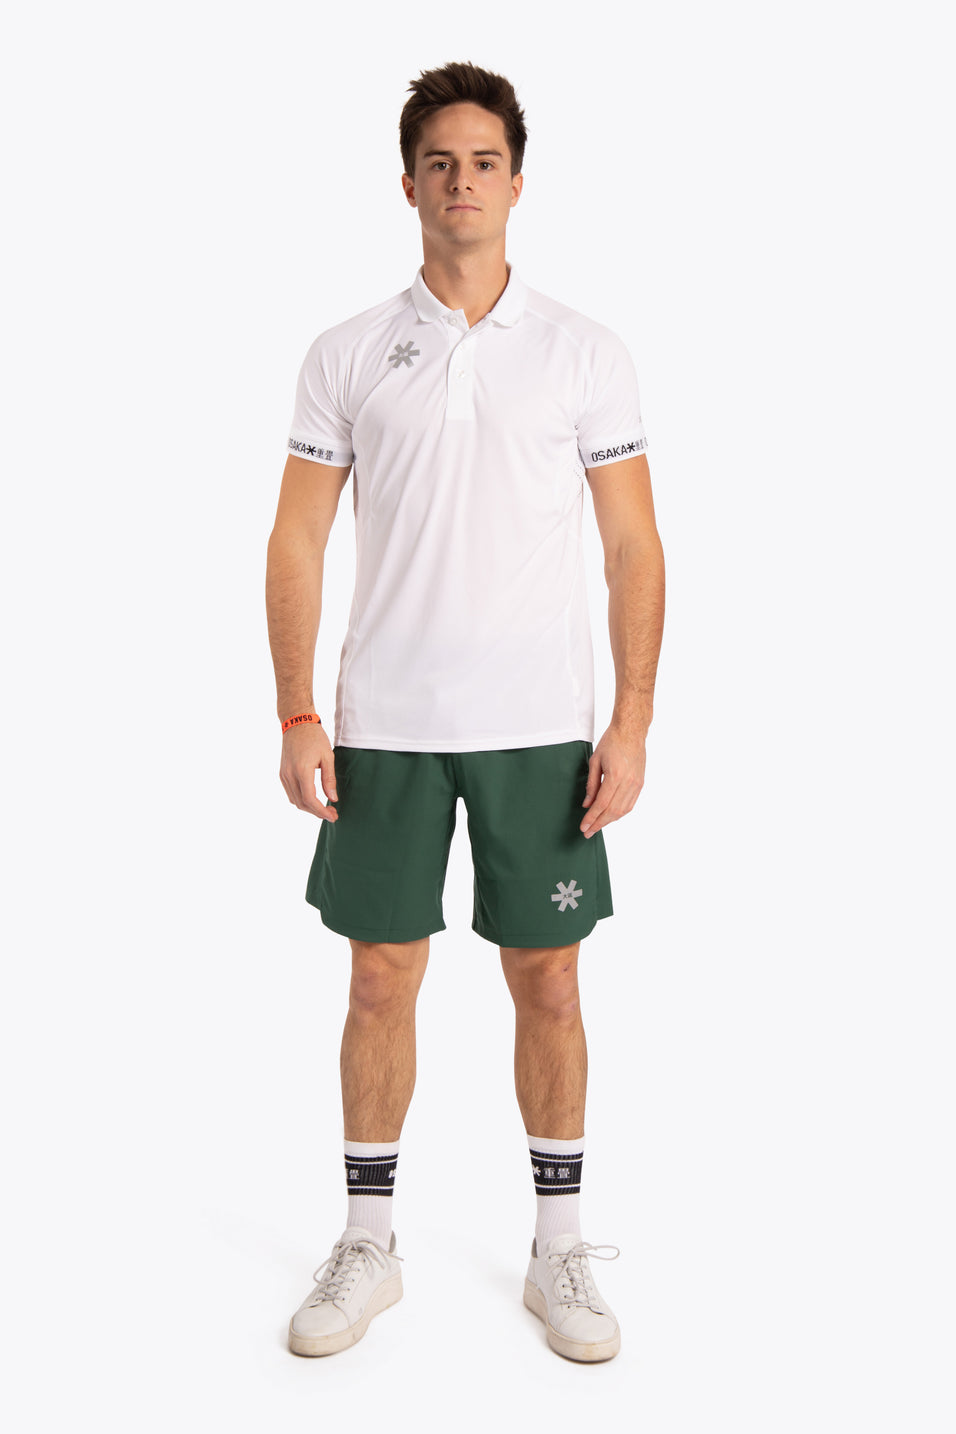 Osaka Men Polo Jersey - White